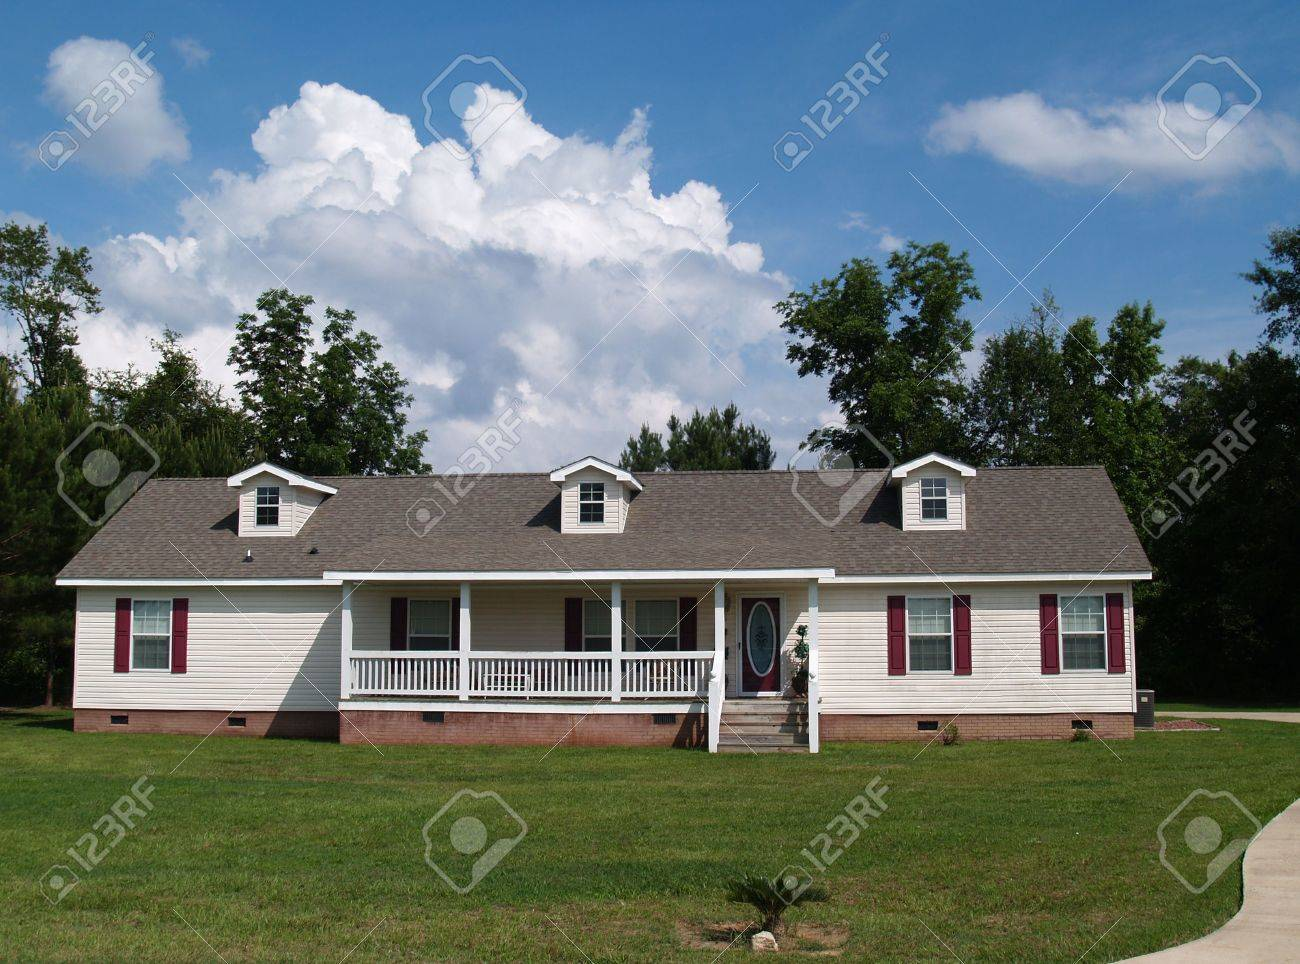 one story residential home with vinyl siding on the facade and one story residential home with vinyl siding on the facade and a brick foundation stock